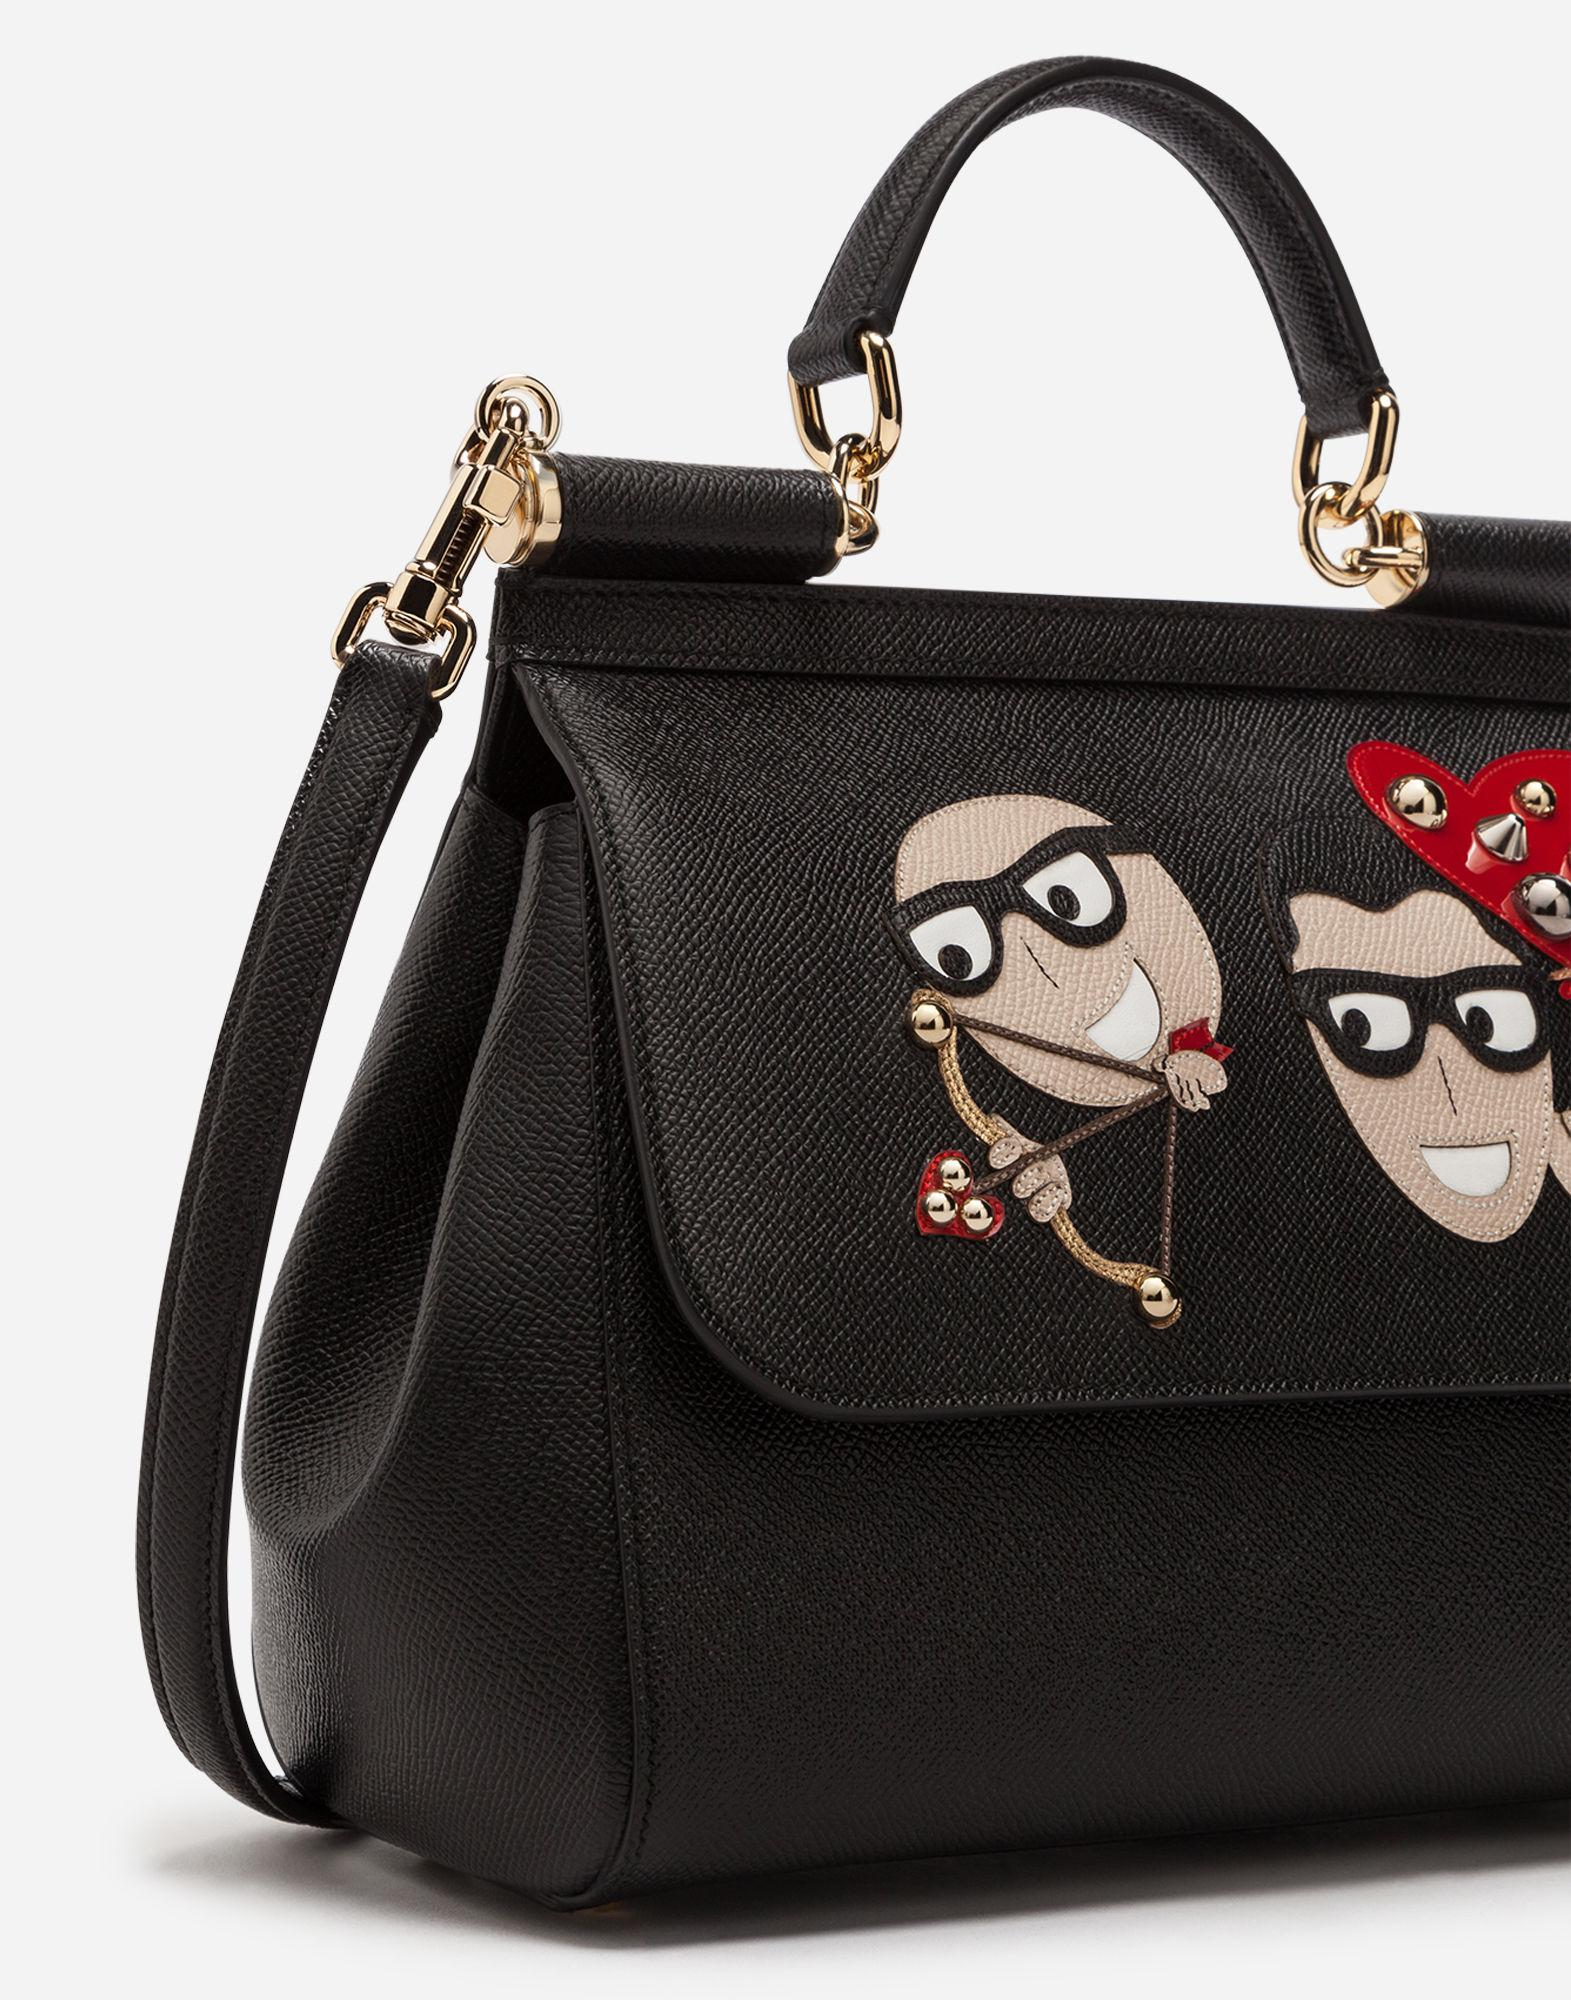 425dbca440 Lyst - Dolce   Gabbana Sicily Handbag In Dauphine Calfskin And Designers   Patches in Black